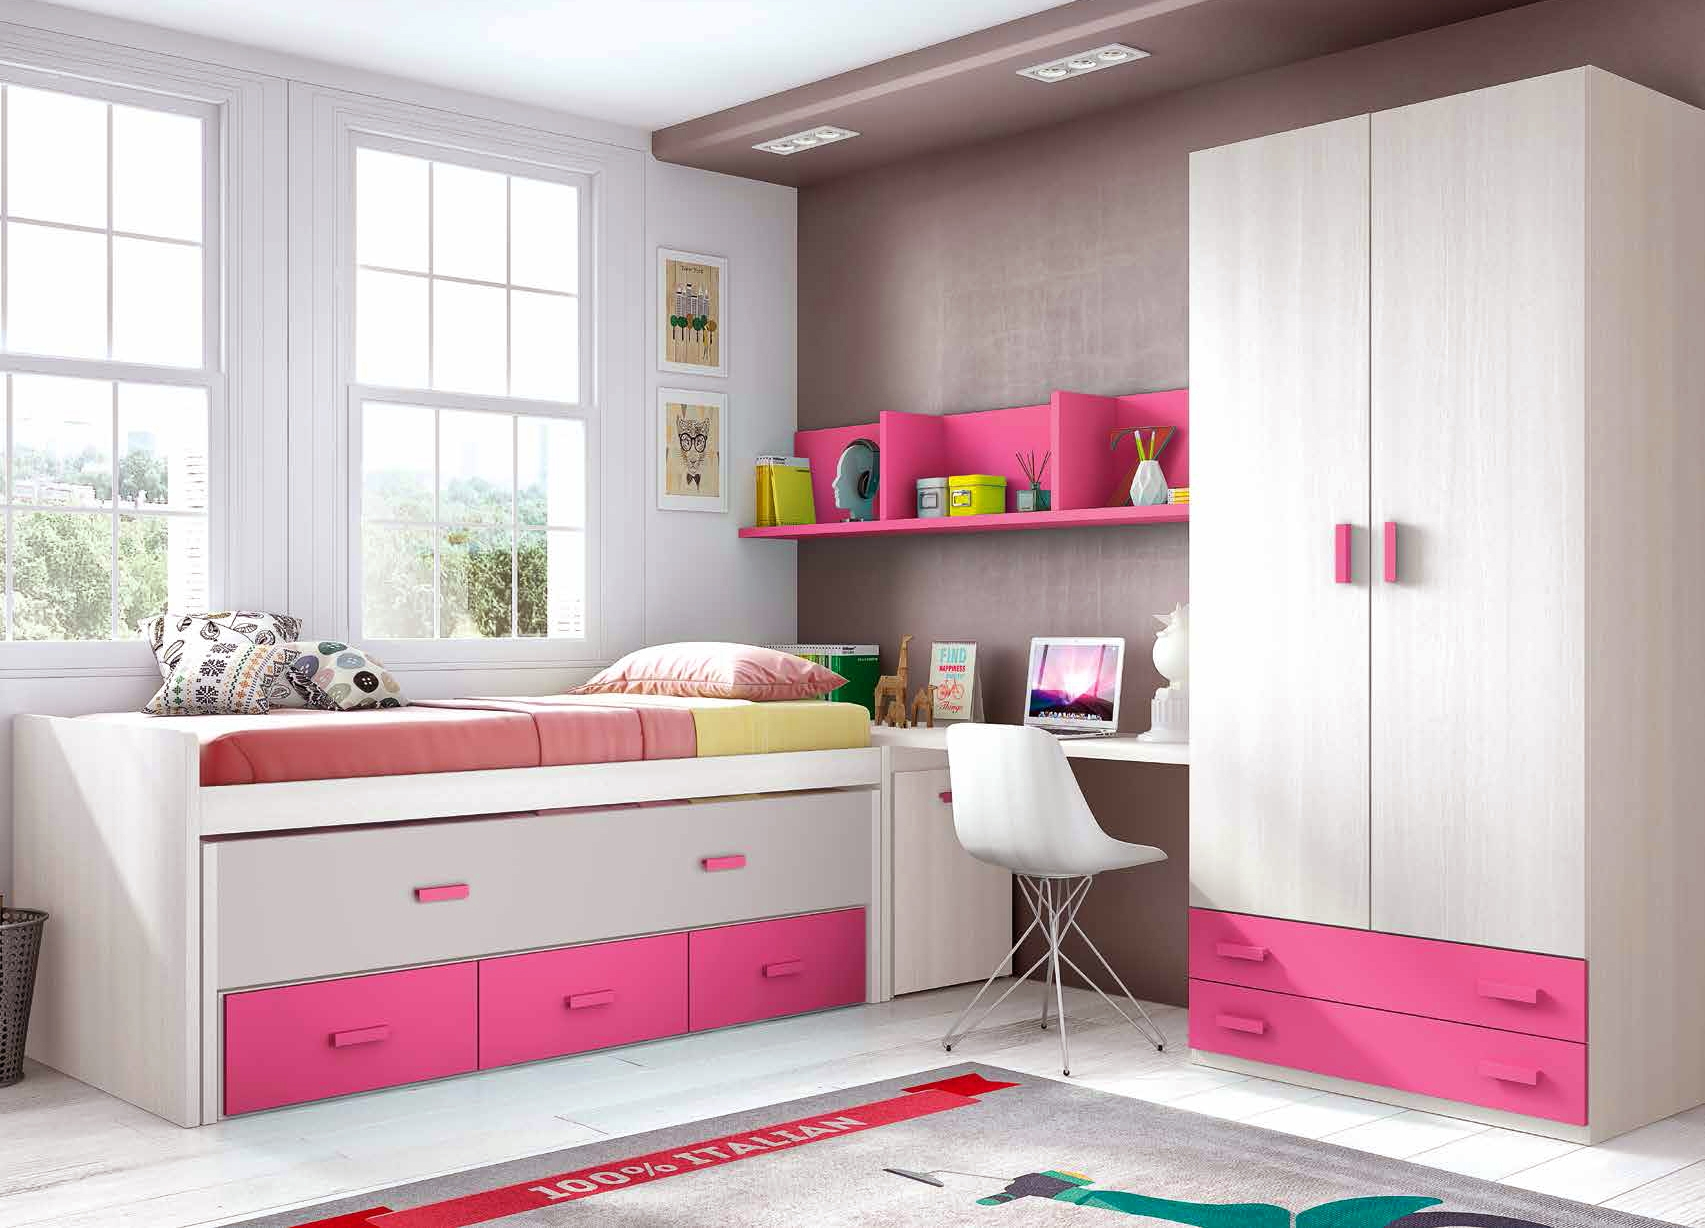 chambre fille rose et fun avec un lit sur lev glicerio. Black Bedroom Furniture Sets. Home Design Ideas